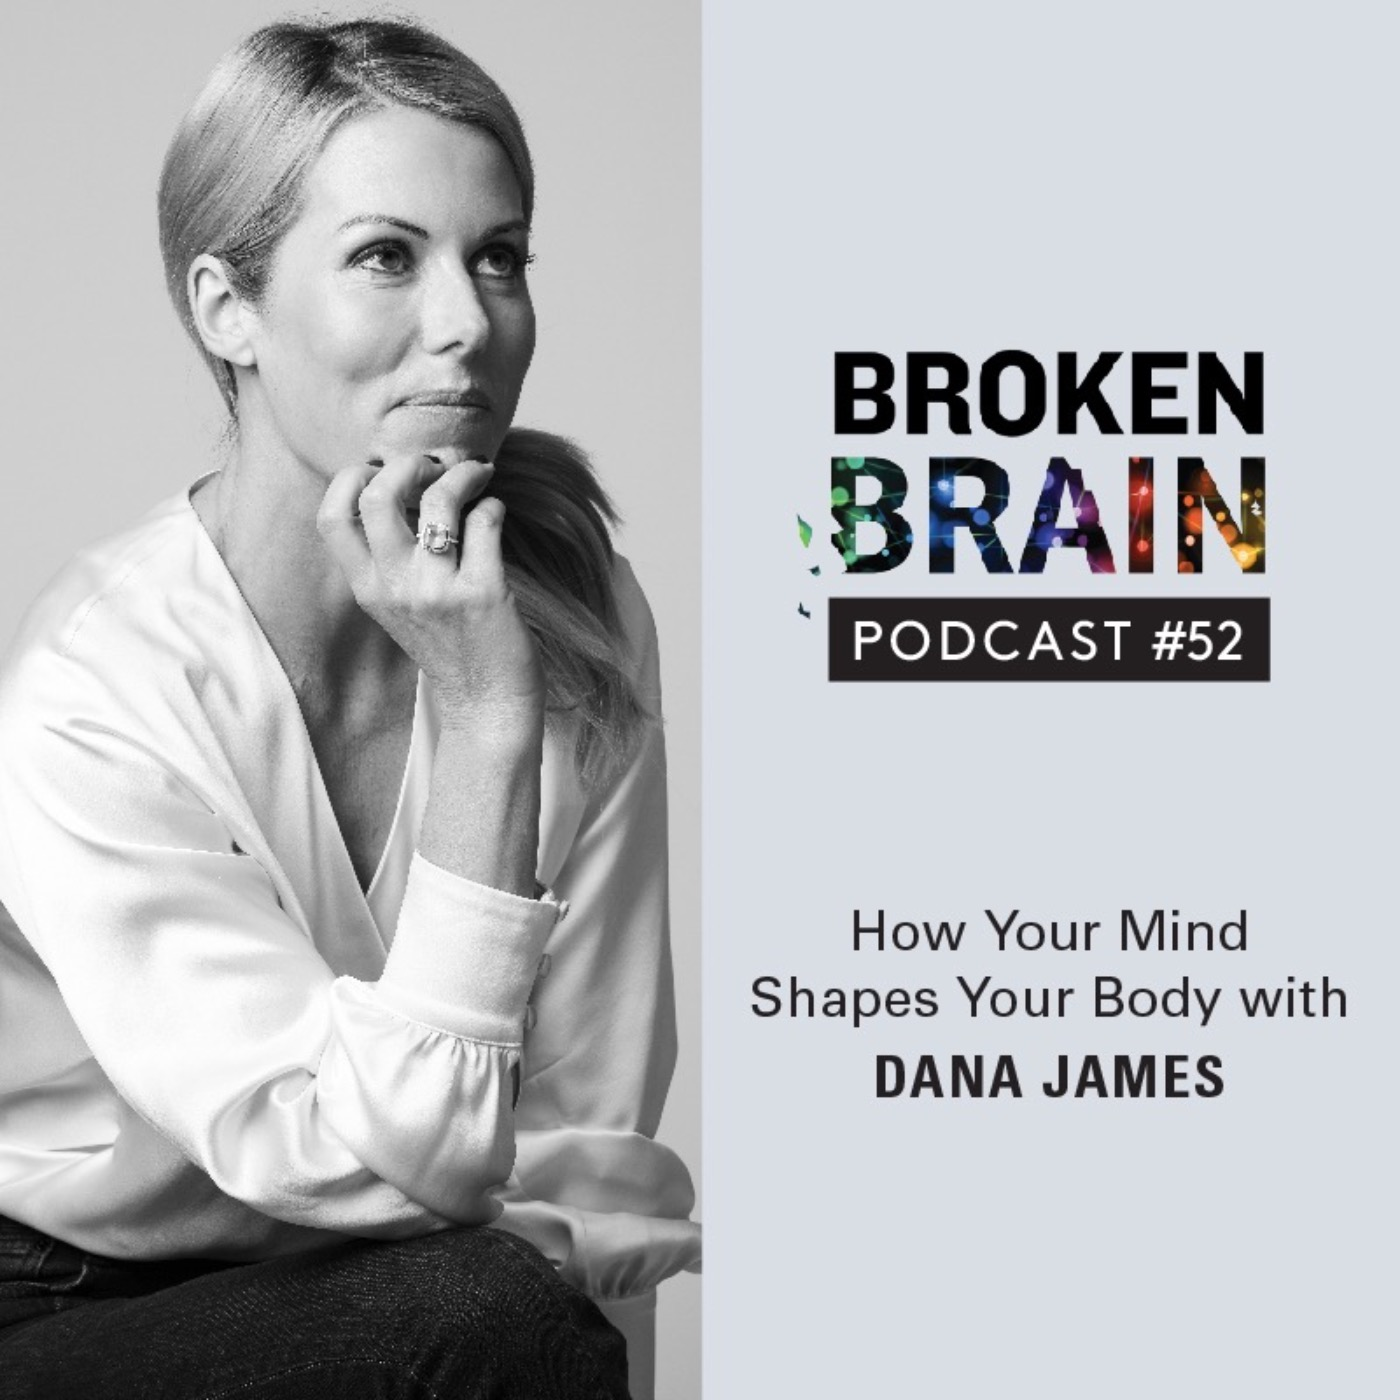 #52: How Your Mind Shapes Your Body with Dana James